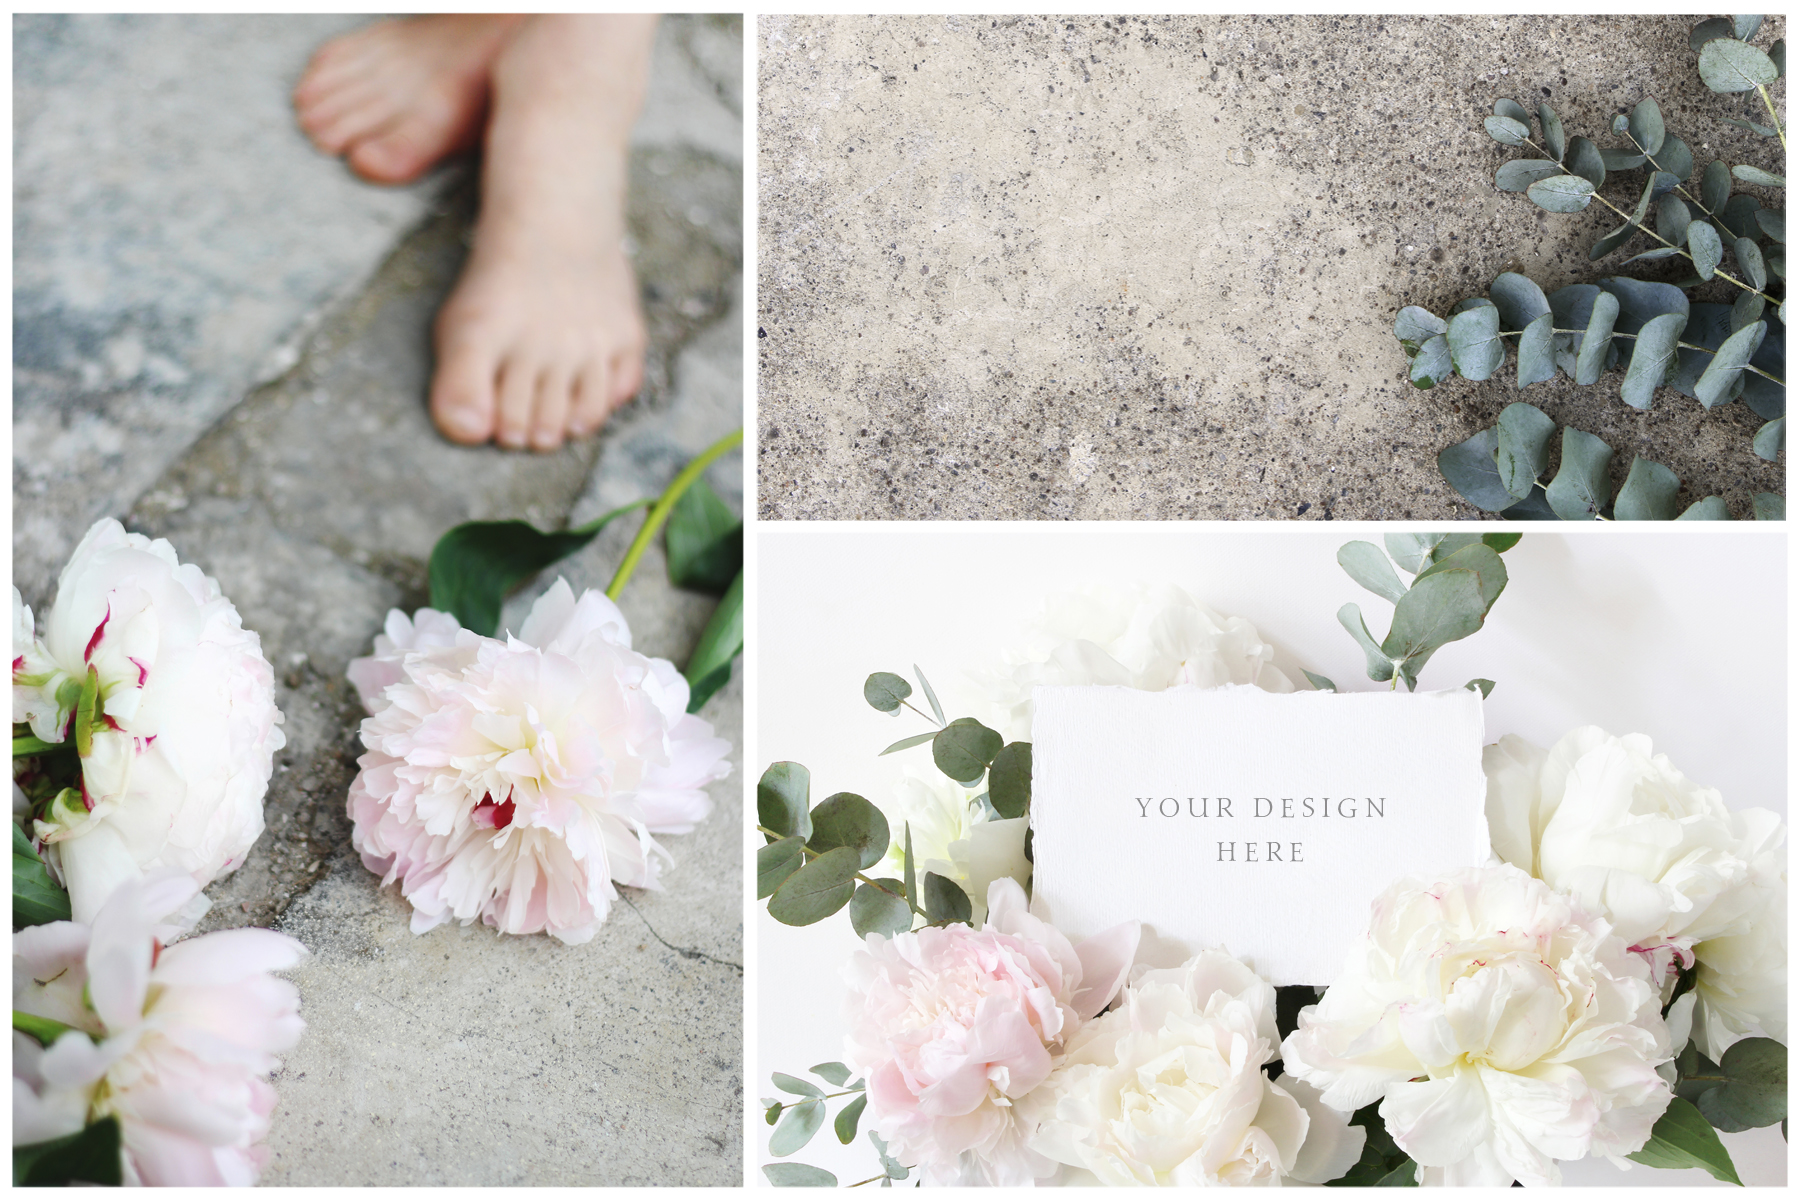 Vintage peony wedding mockups & stock photo bundle example image 7